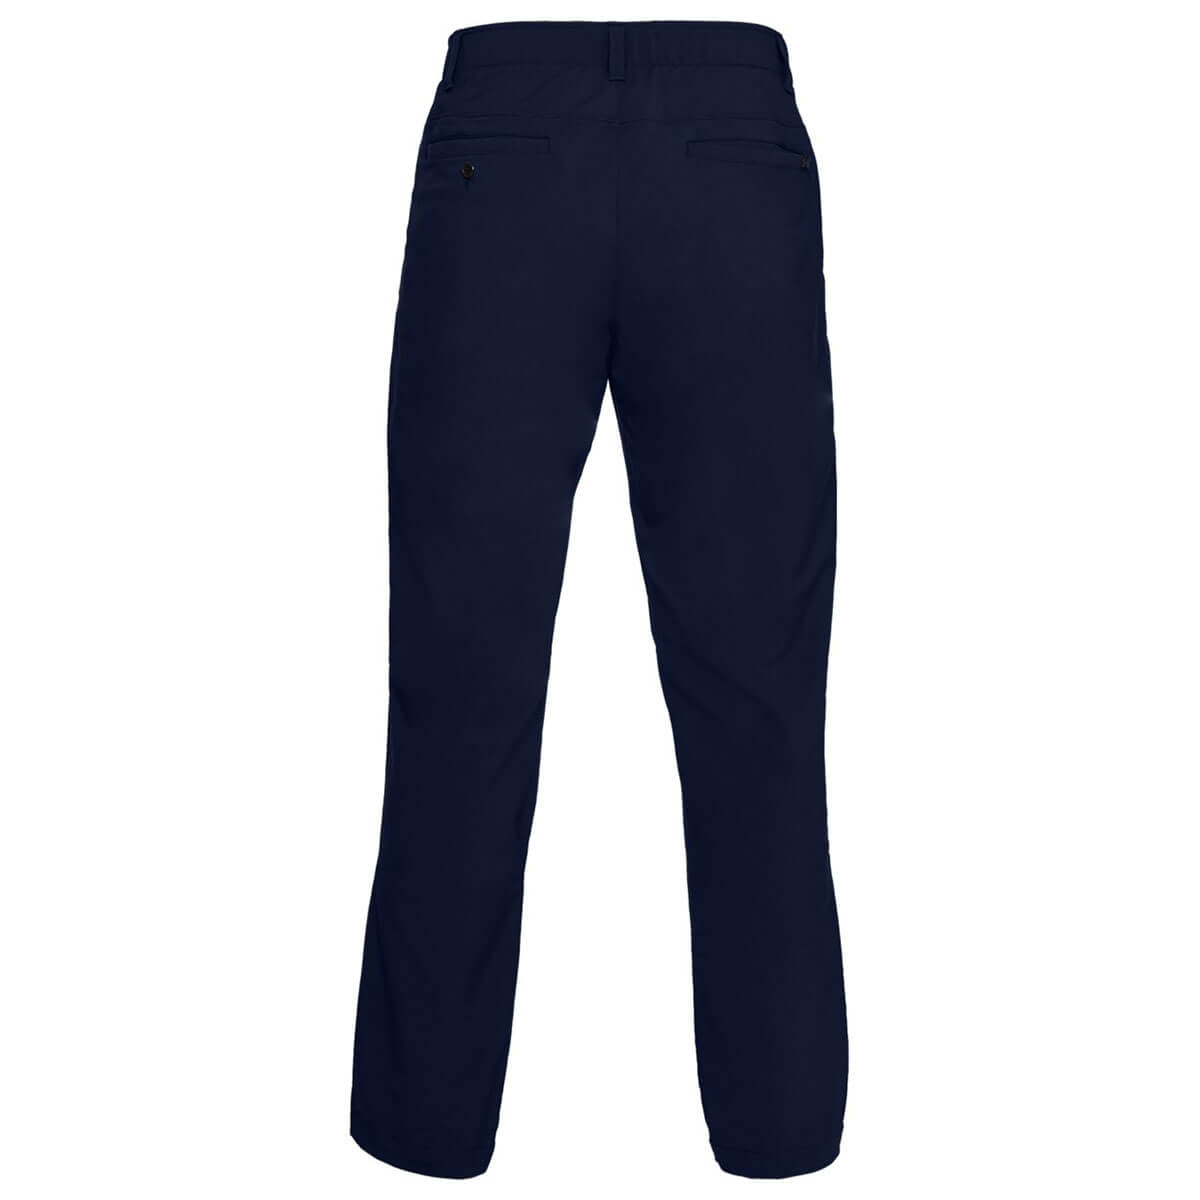 Under-Armour-Mens-2019-EU-Performance-Slim-Taper-Soft-Stretch-Golf-Trousers thumbnail 5